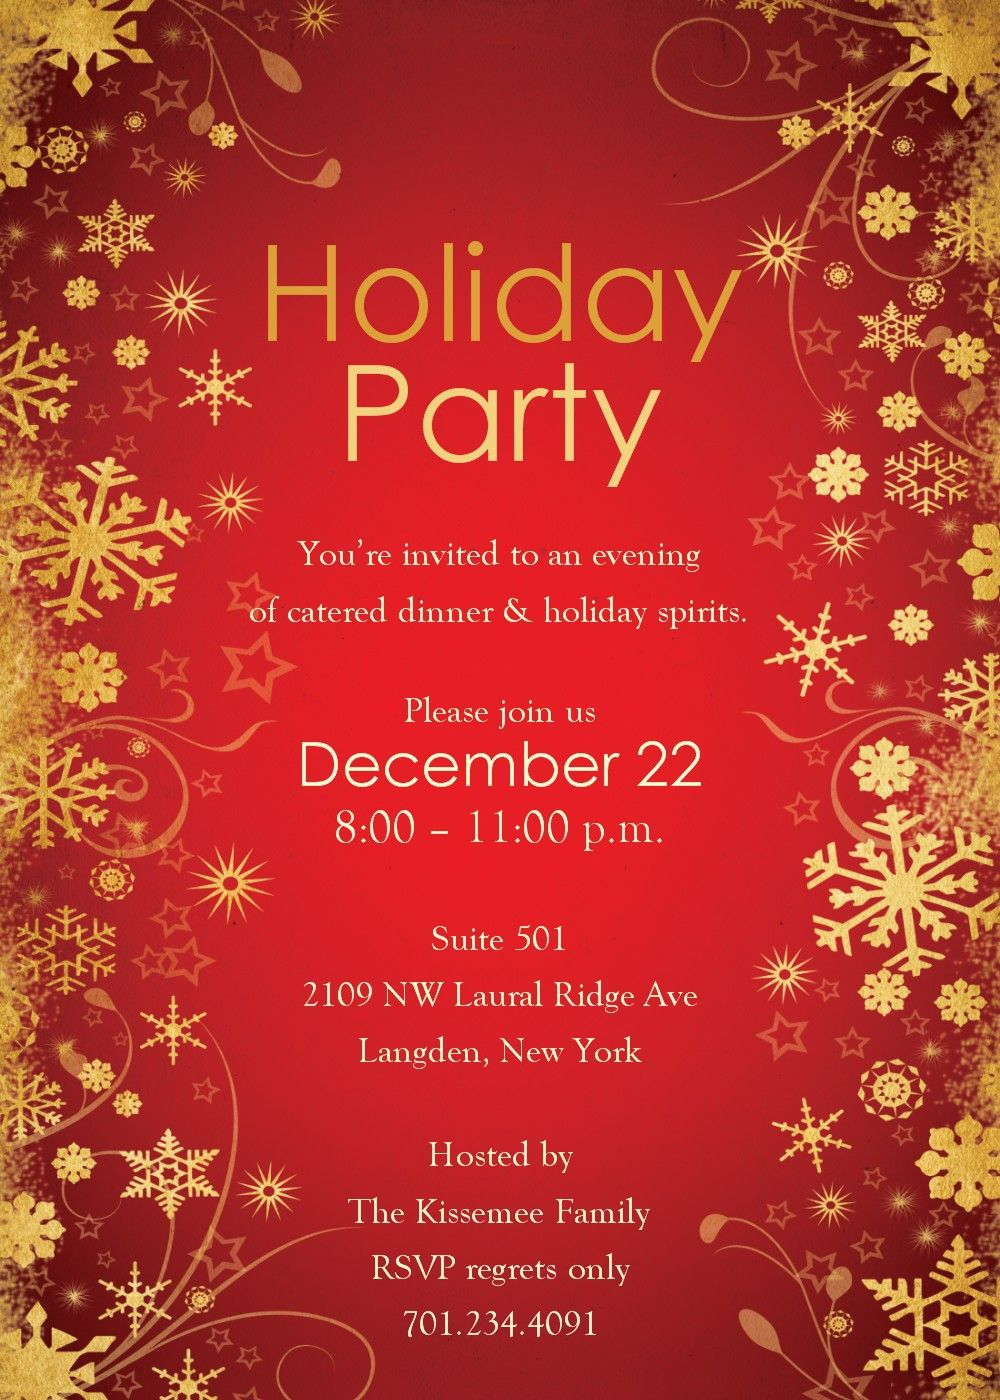 Christmas Party Invitations Templates Word  Party Invitation Template Word